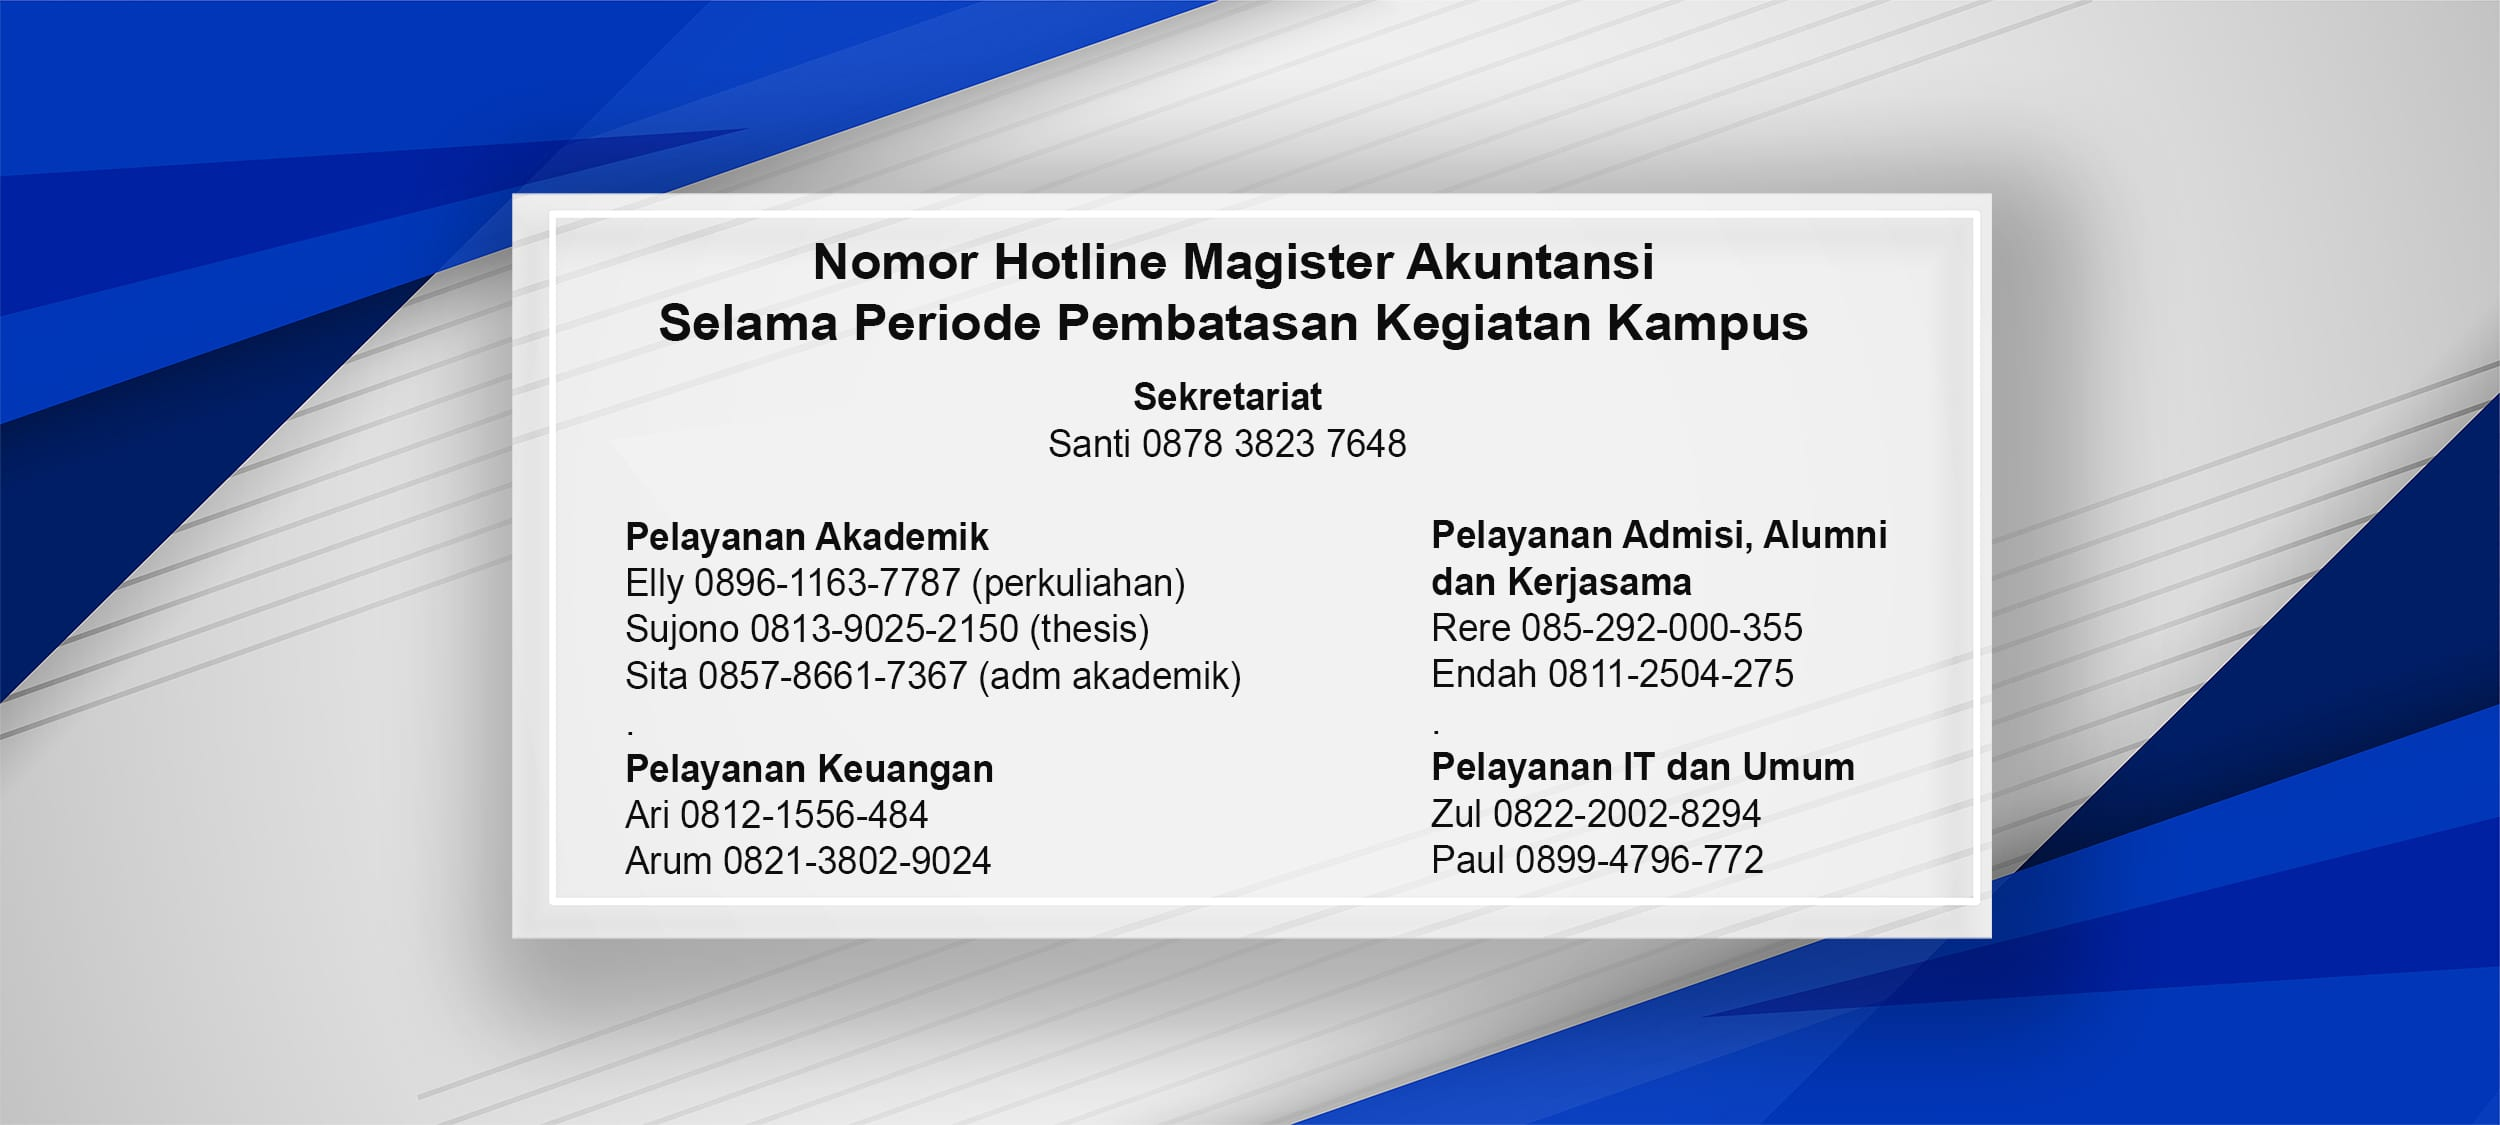 Hotline Number